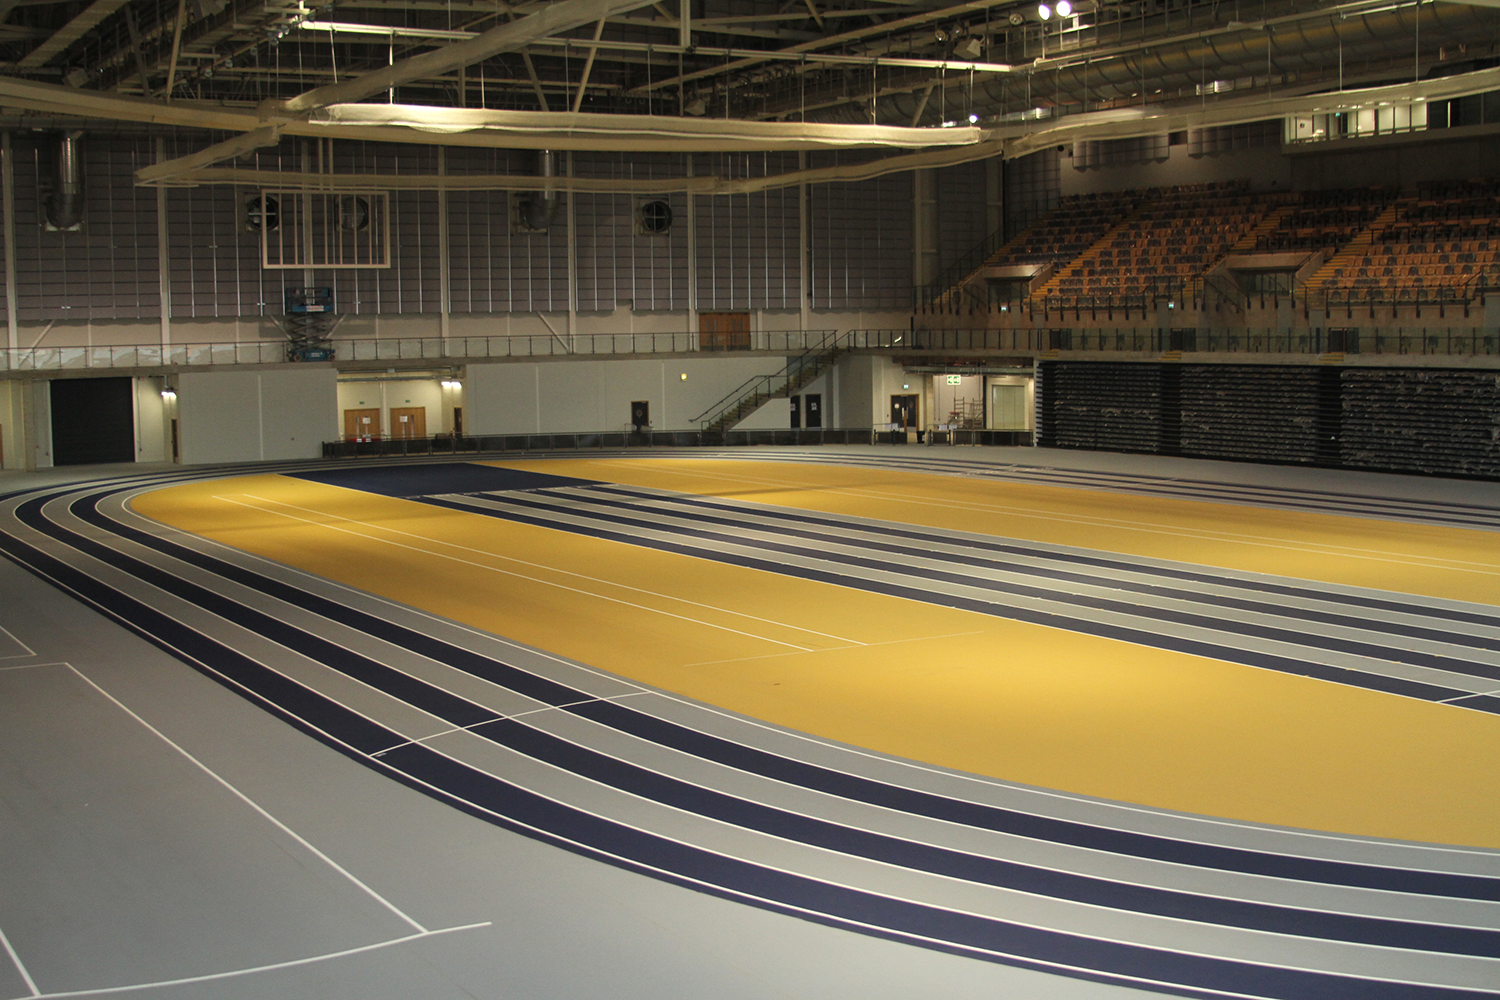 Emirates Arena Indoor Athletics Track & Motorised Dividers by Unisport